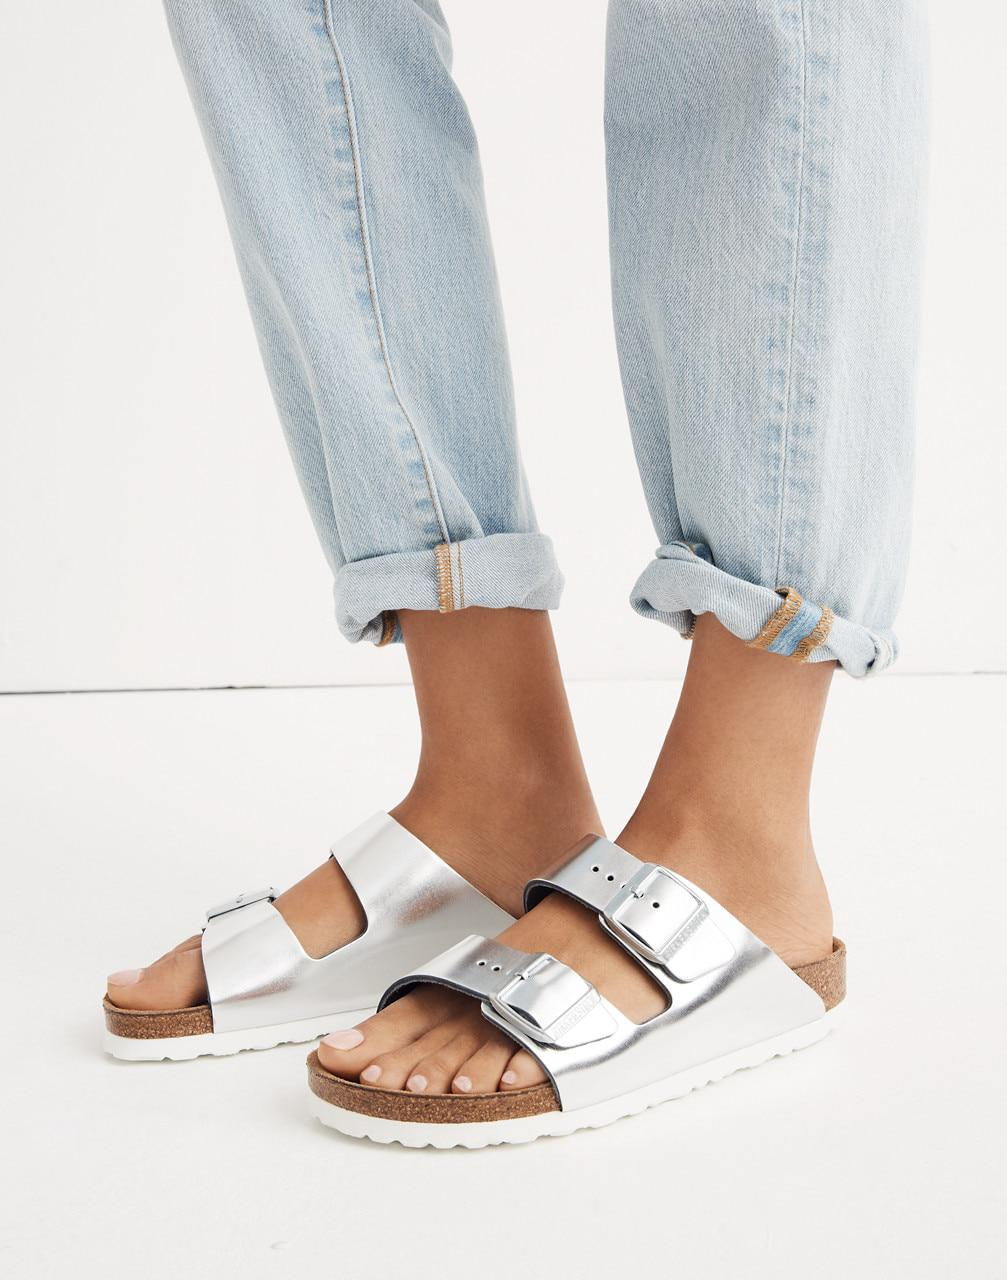 f5e33f68d8d Lyst - Madewell Birkenstock Arizona Sandals In Black Leather in Black -  Save 35.55555555555556%